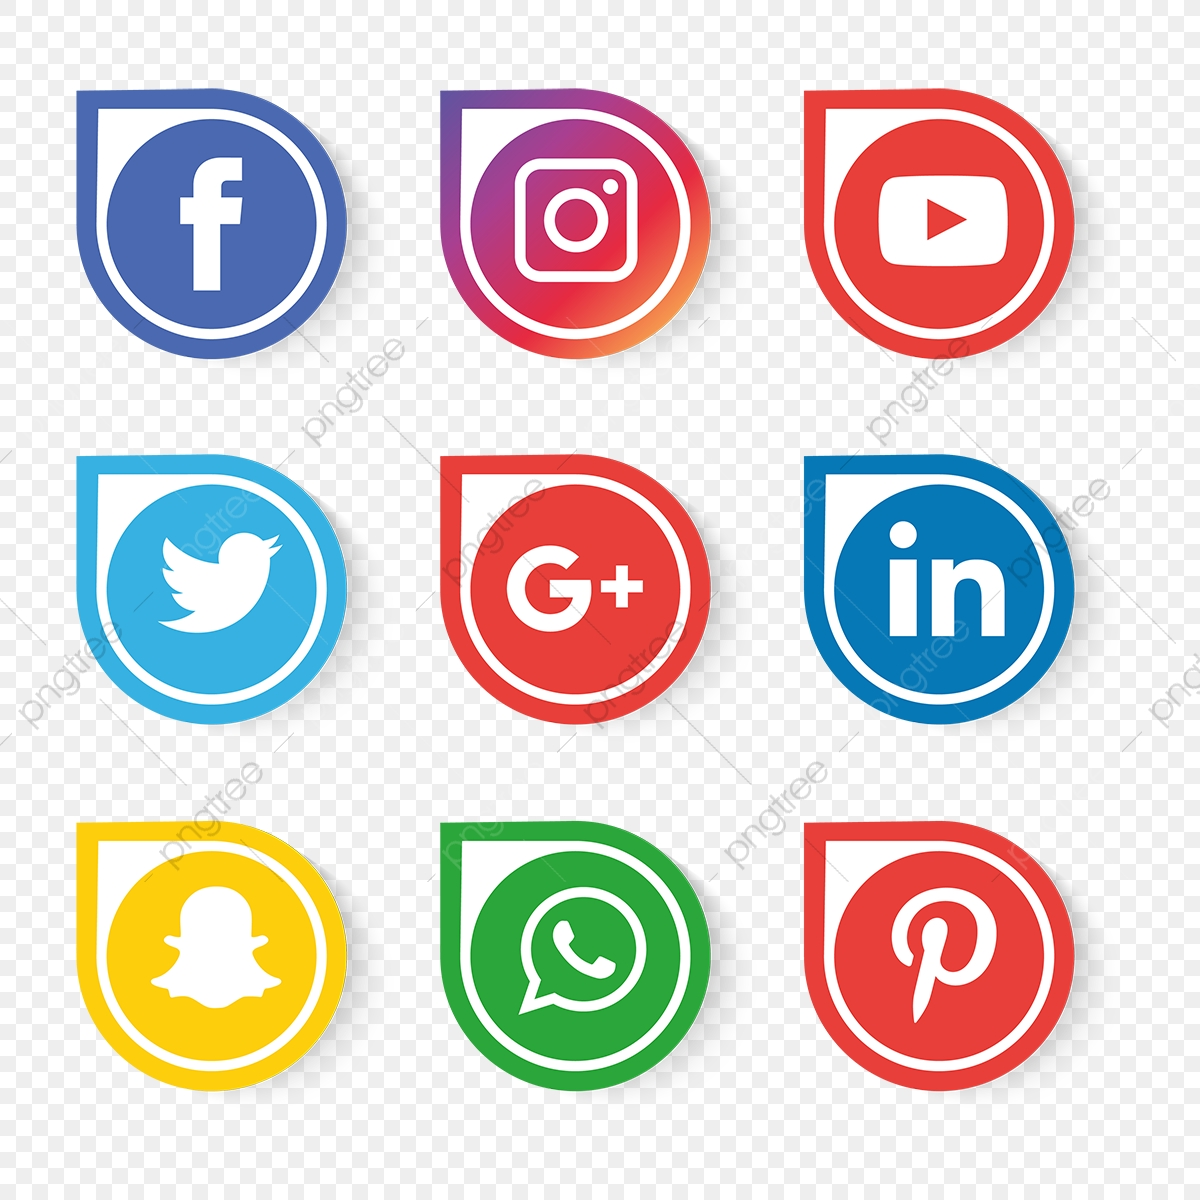 Social Media Icons Set Vector, Social Media Icons, Social Media.